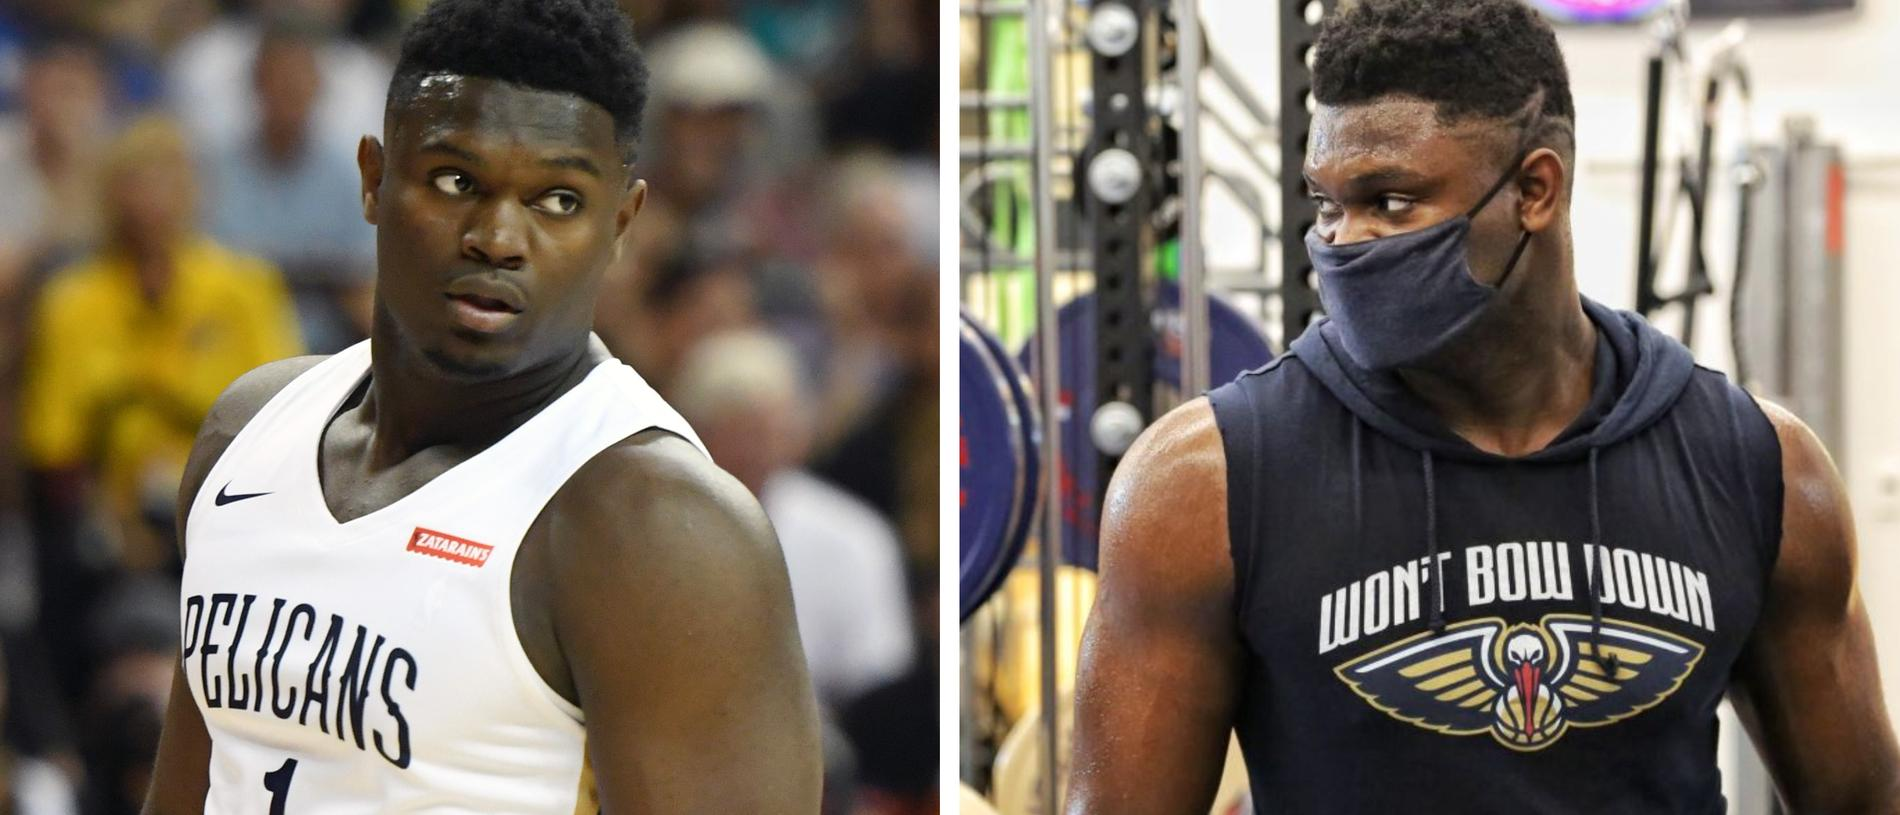 Zion Williamson has been putting in work during the mid-season break